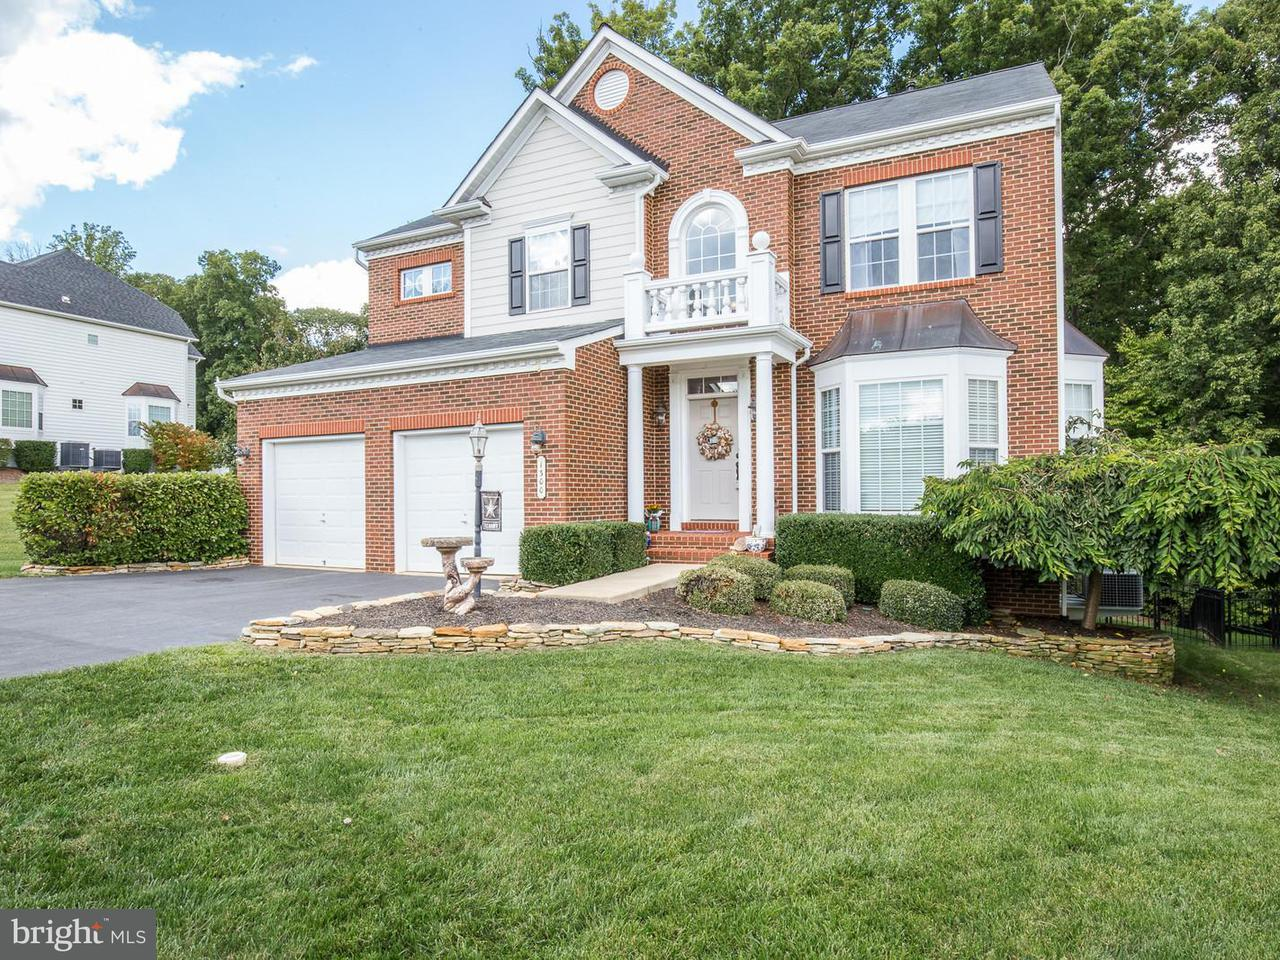 Additional photo for property listing at 1300 Preserve Lane 1300 Preserve Lane Fredericksburg, Virginia 22401 Estados Unidos